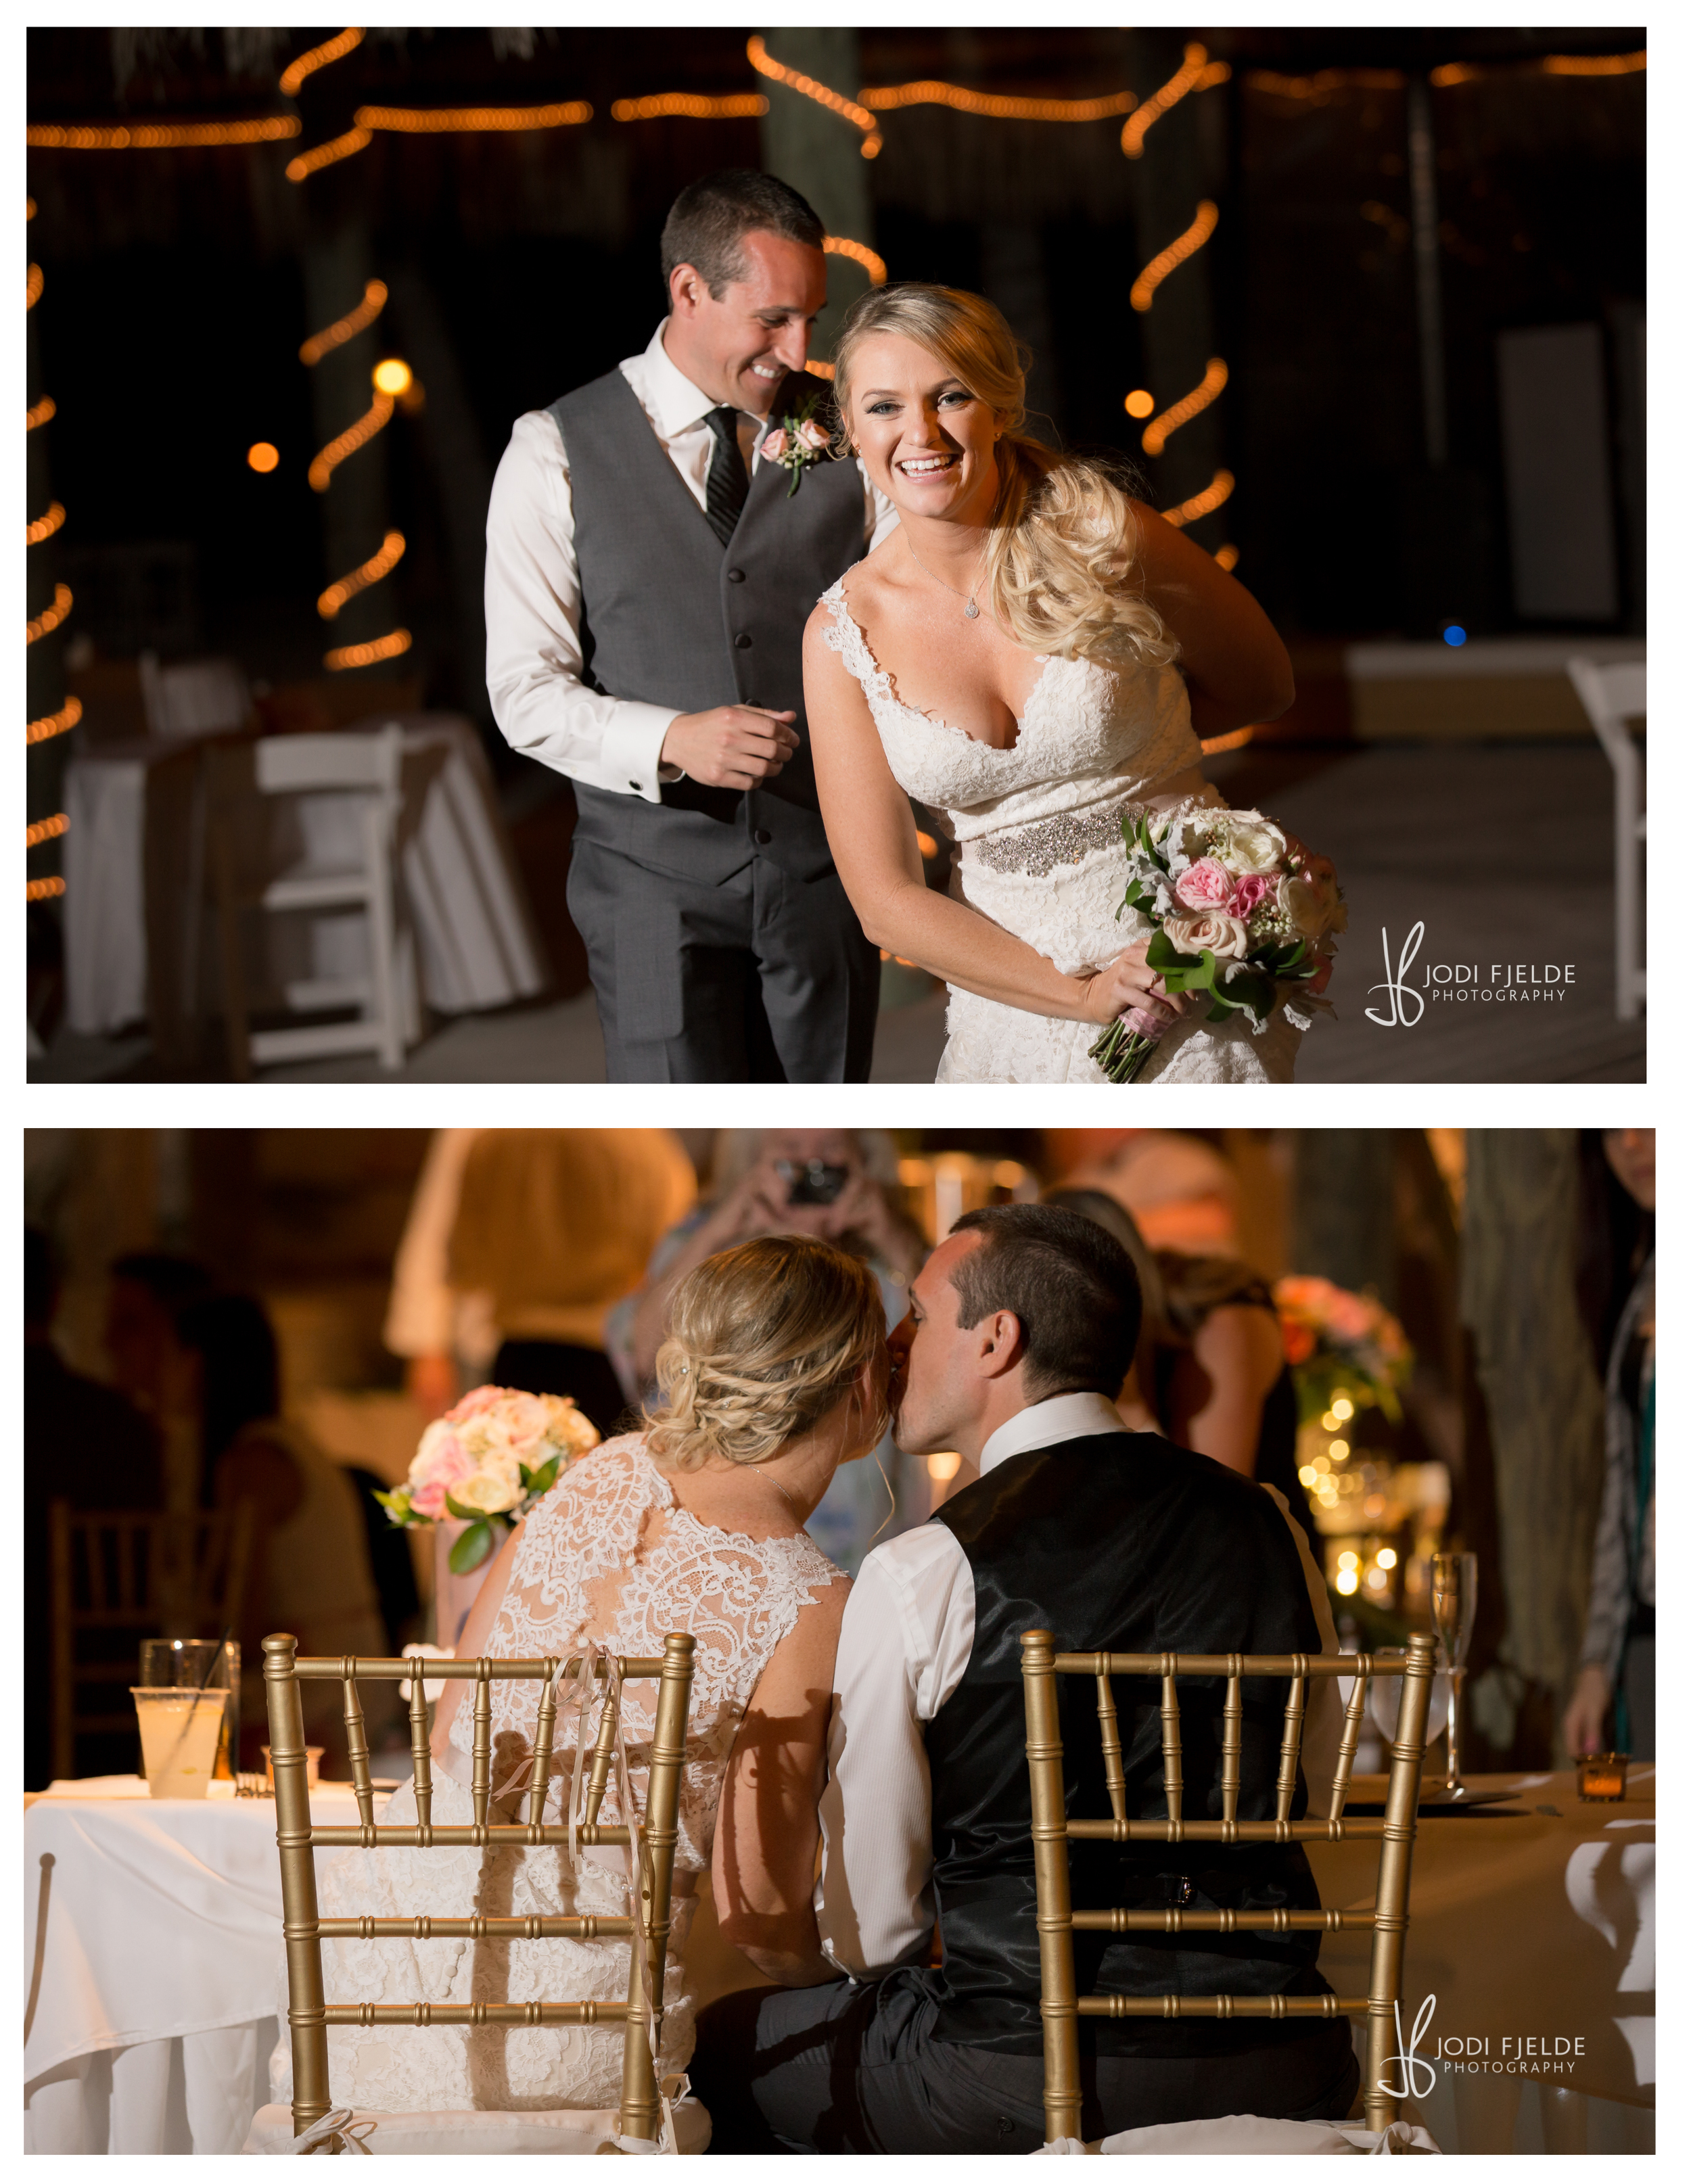 Cocconut_Cove_&_ Marina_ wedding_Kalie_and_Kurt  39.jpg